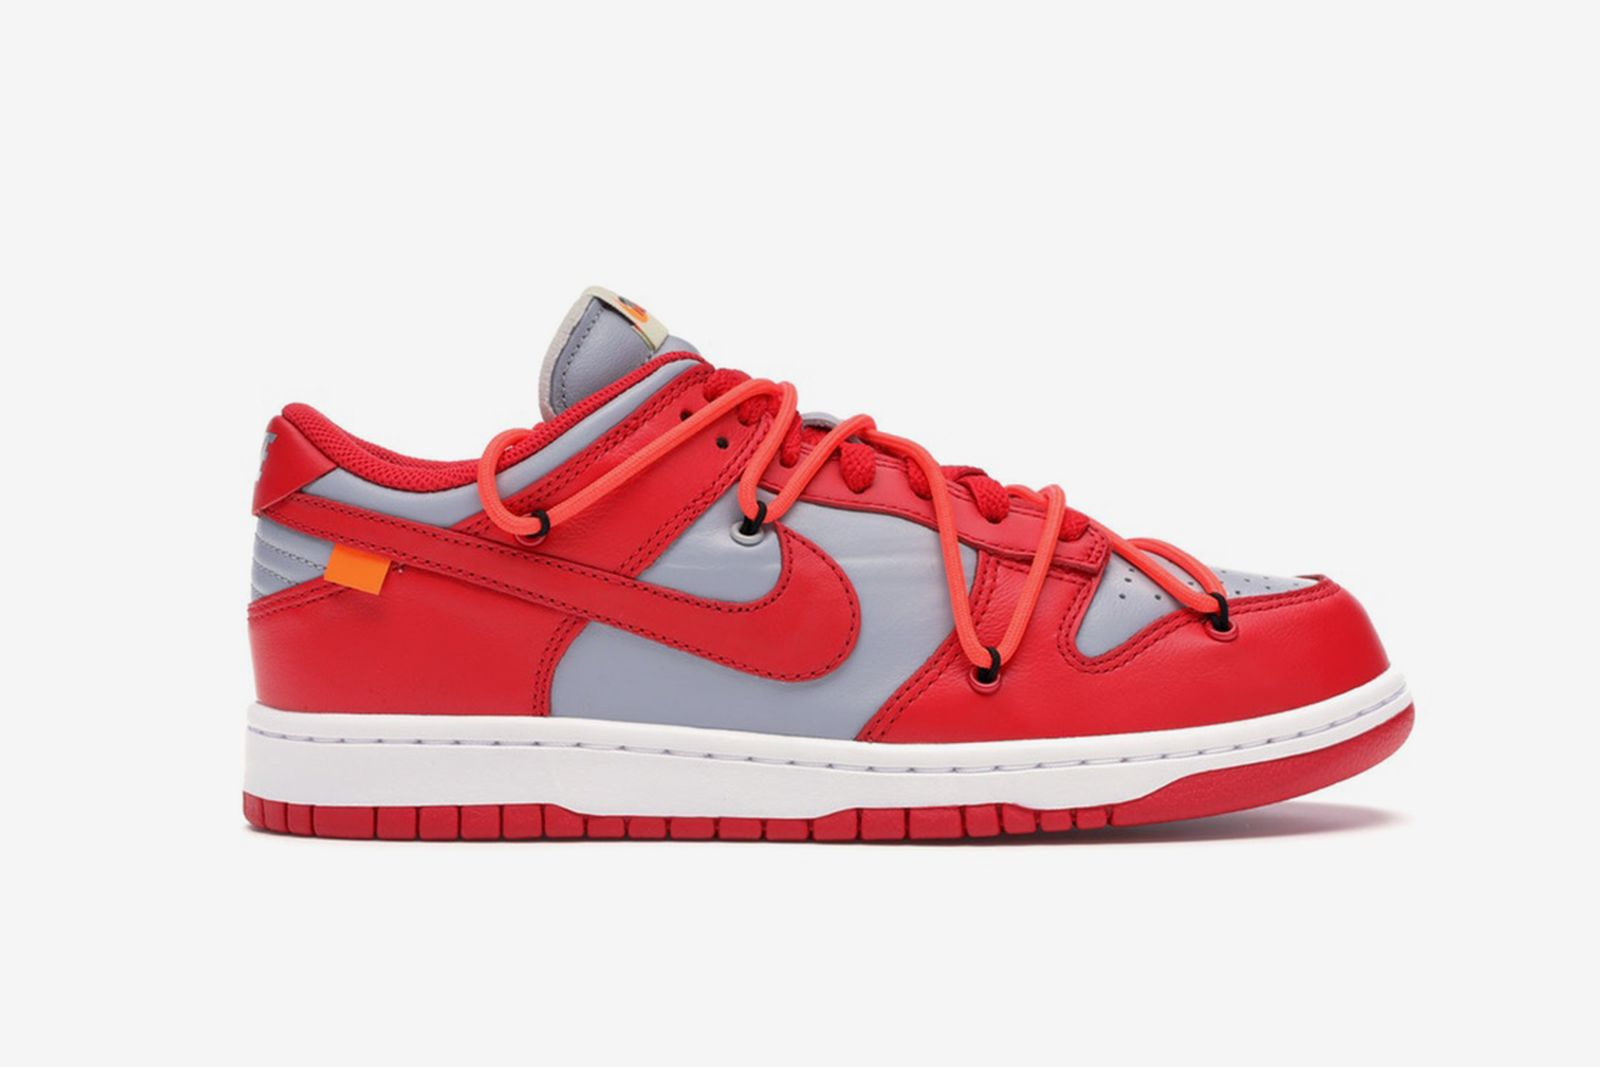 nike-off-white-guide-update-2020-dunk-3